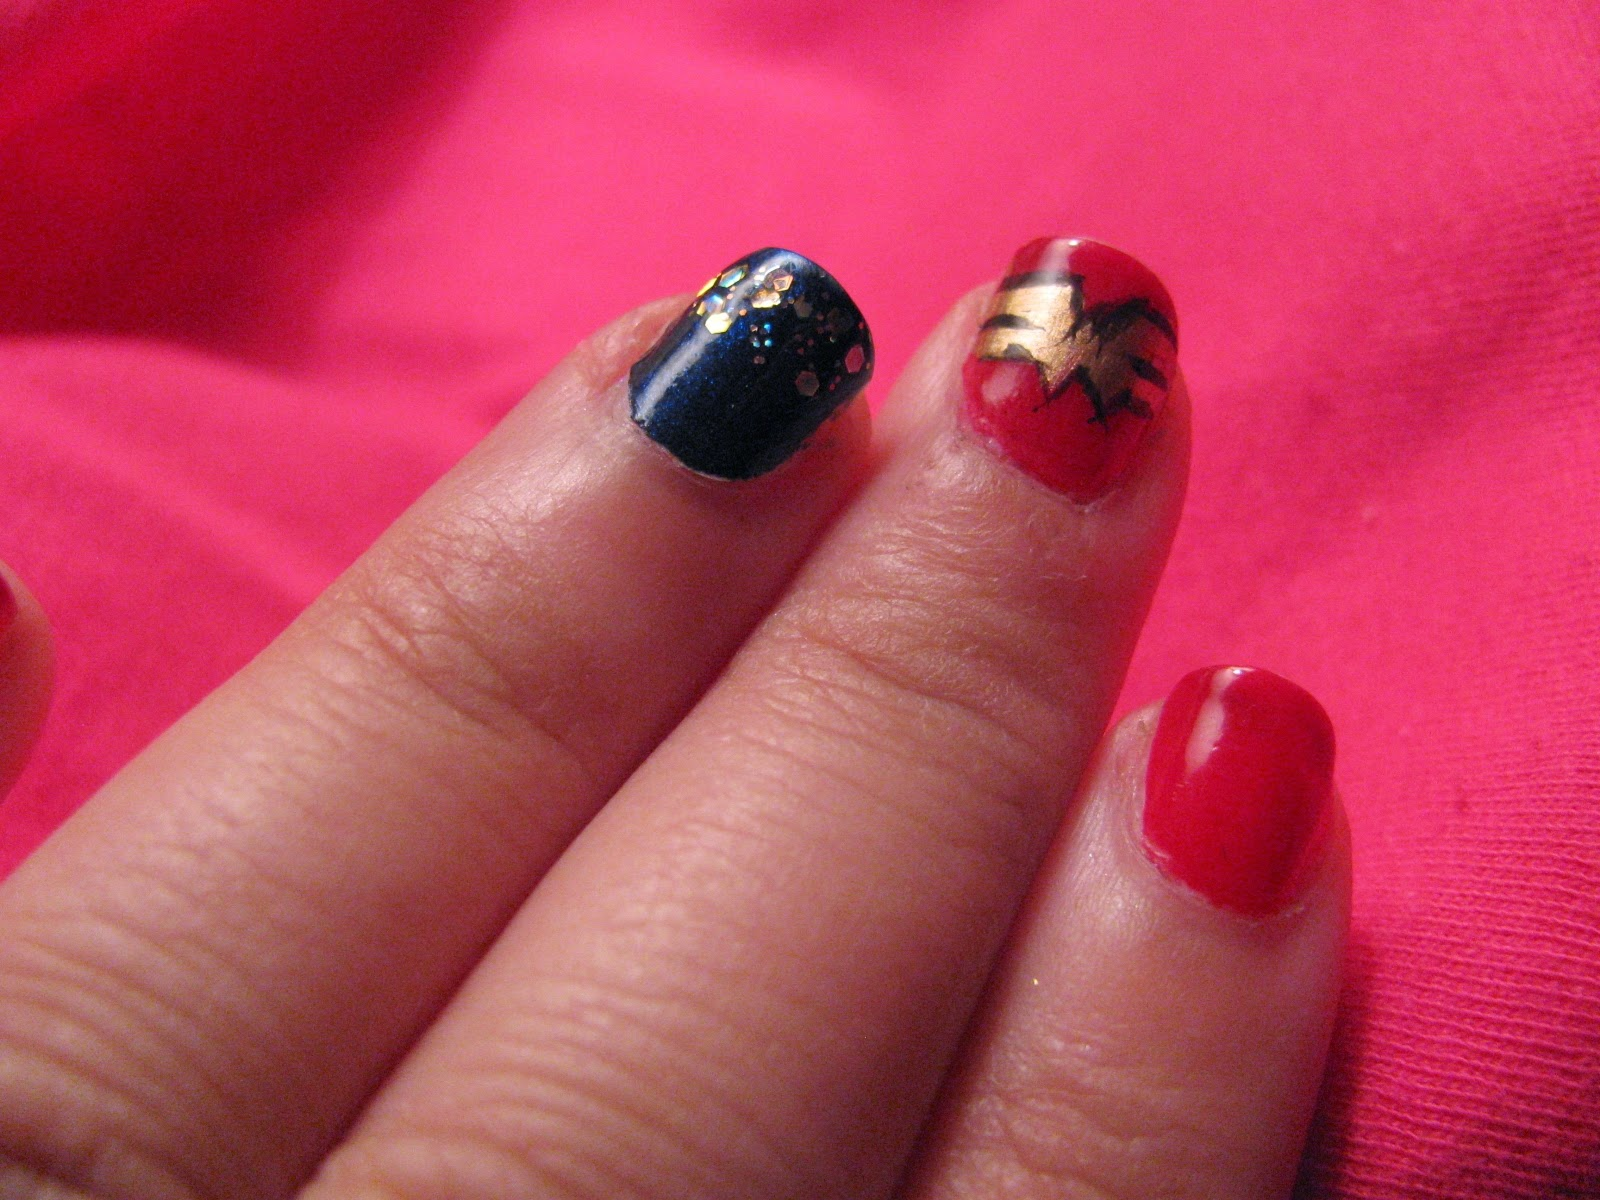 The Super Secret Nail Blog: Weekend Nails: ComiCon Special